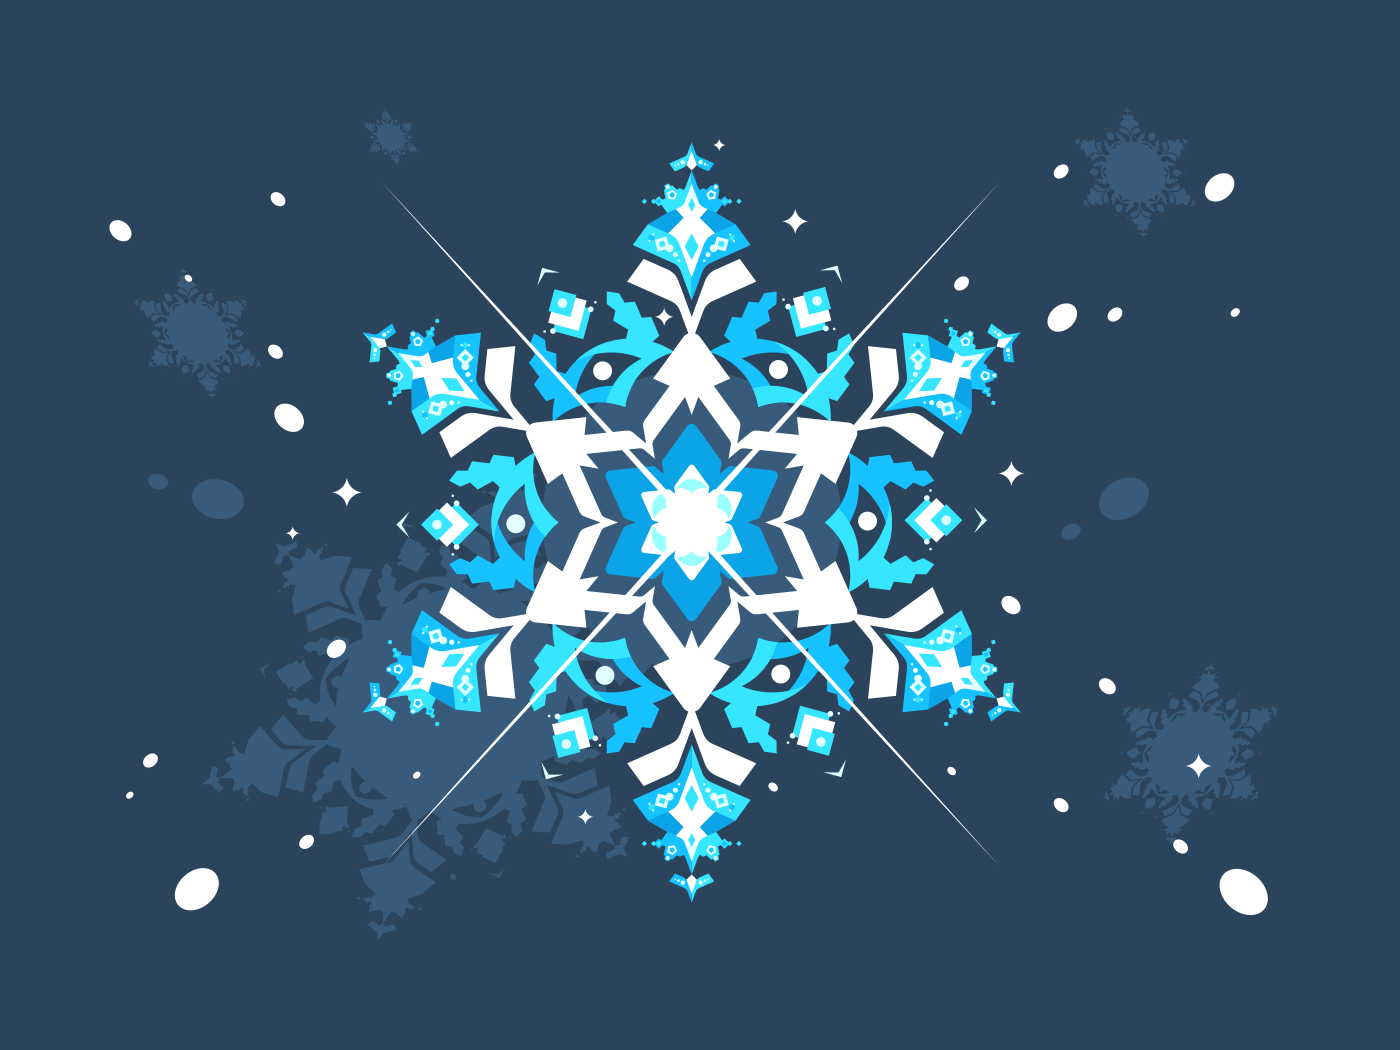 Abstract snowlflake flat design. Illustration of art snow for xmas holiday vector